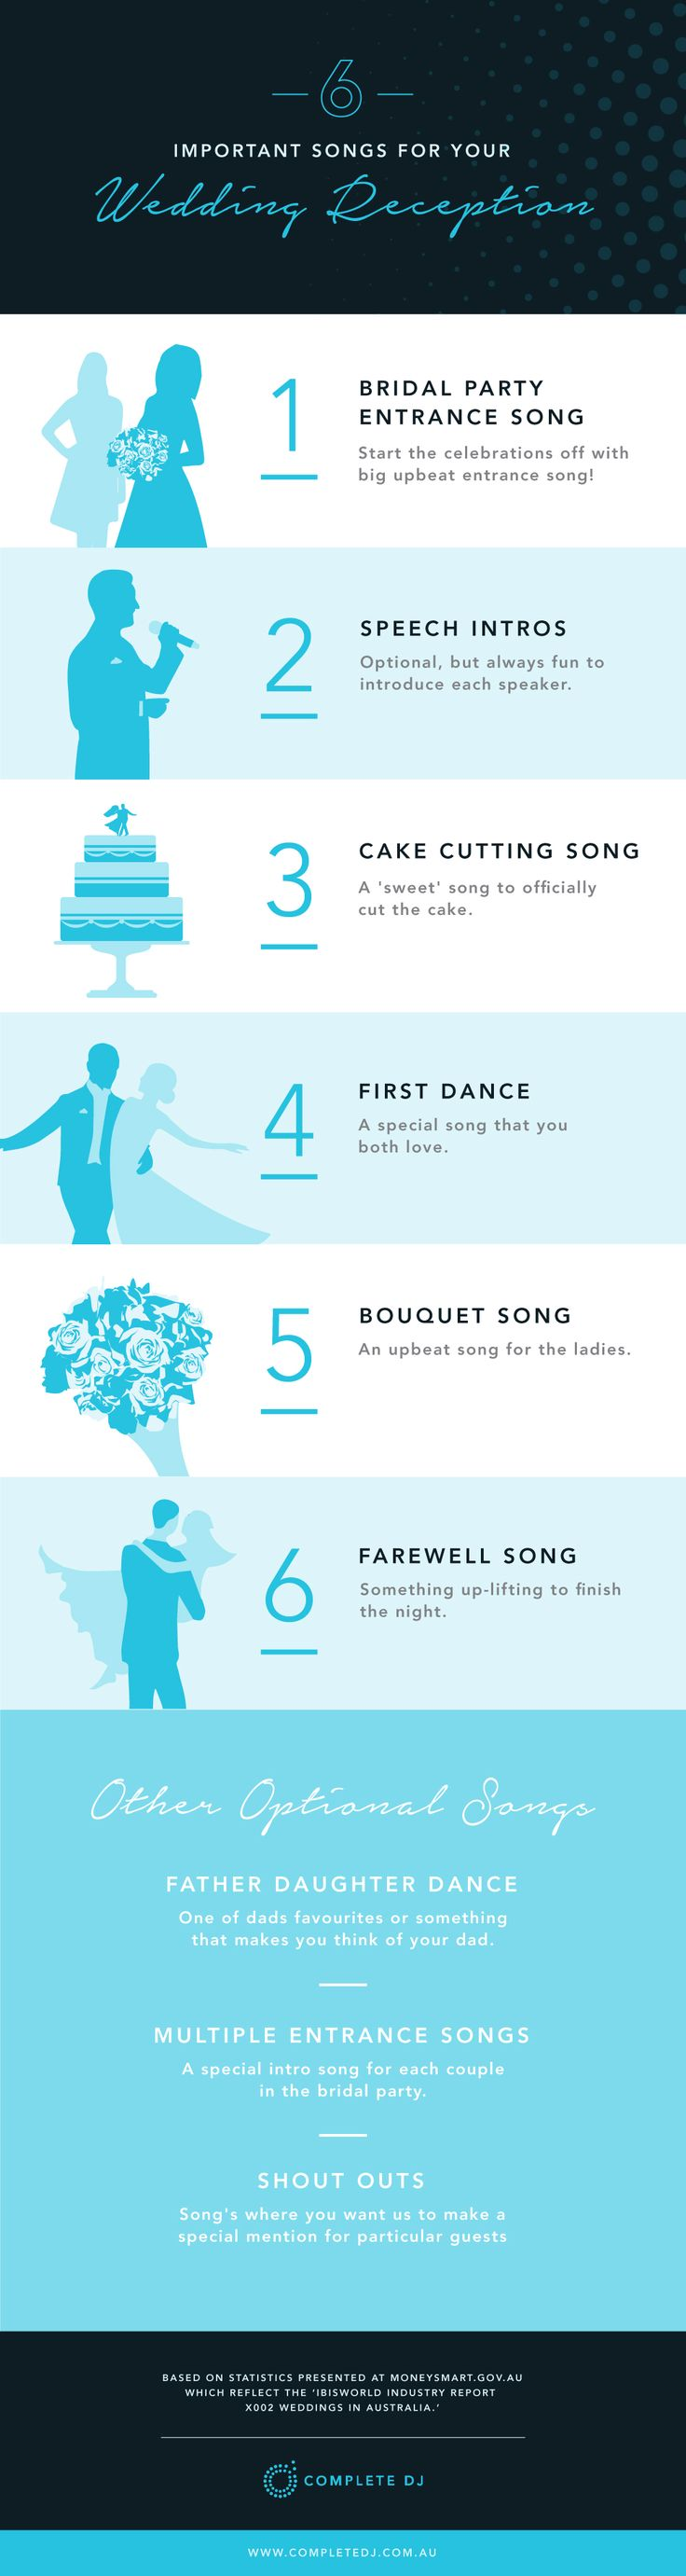 All The Important Songs Youll Need To Think Of For Your Wedding Repetition